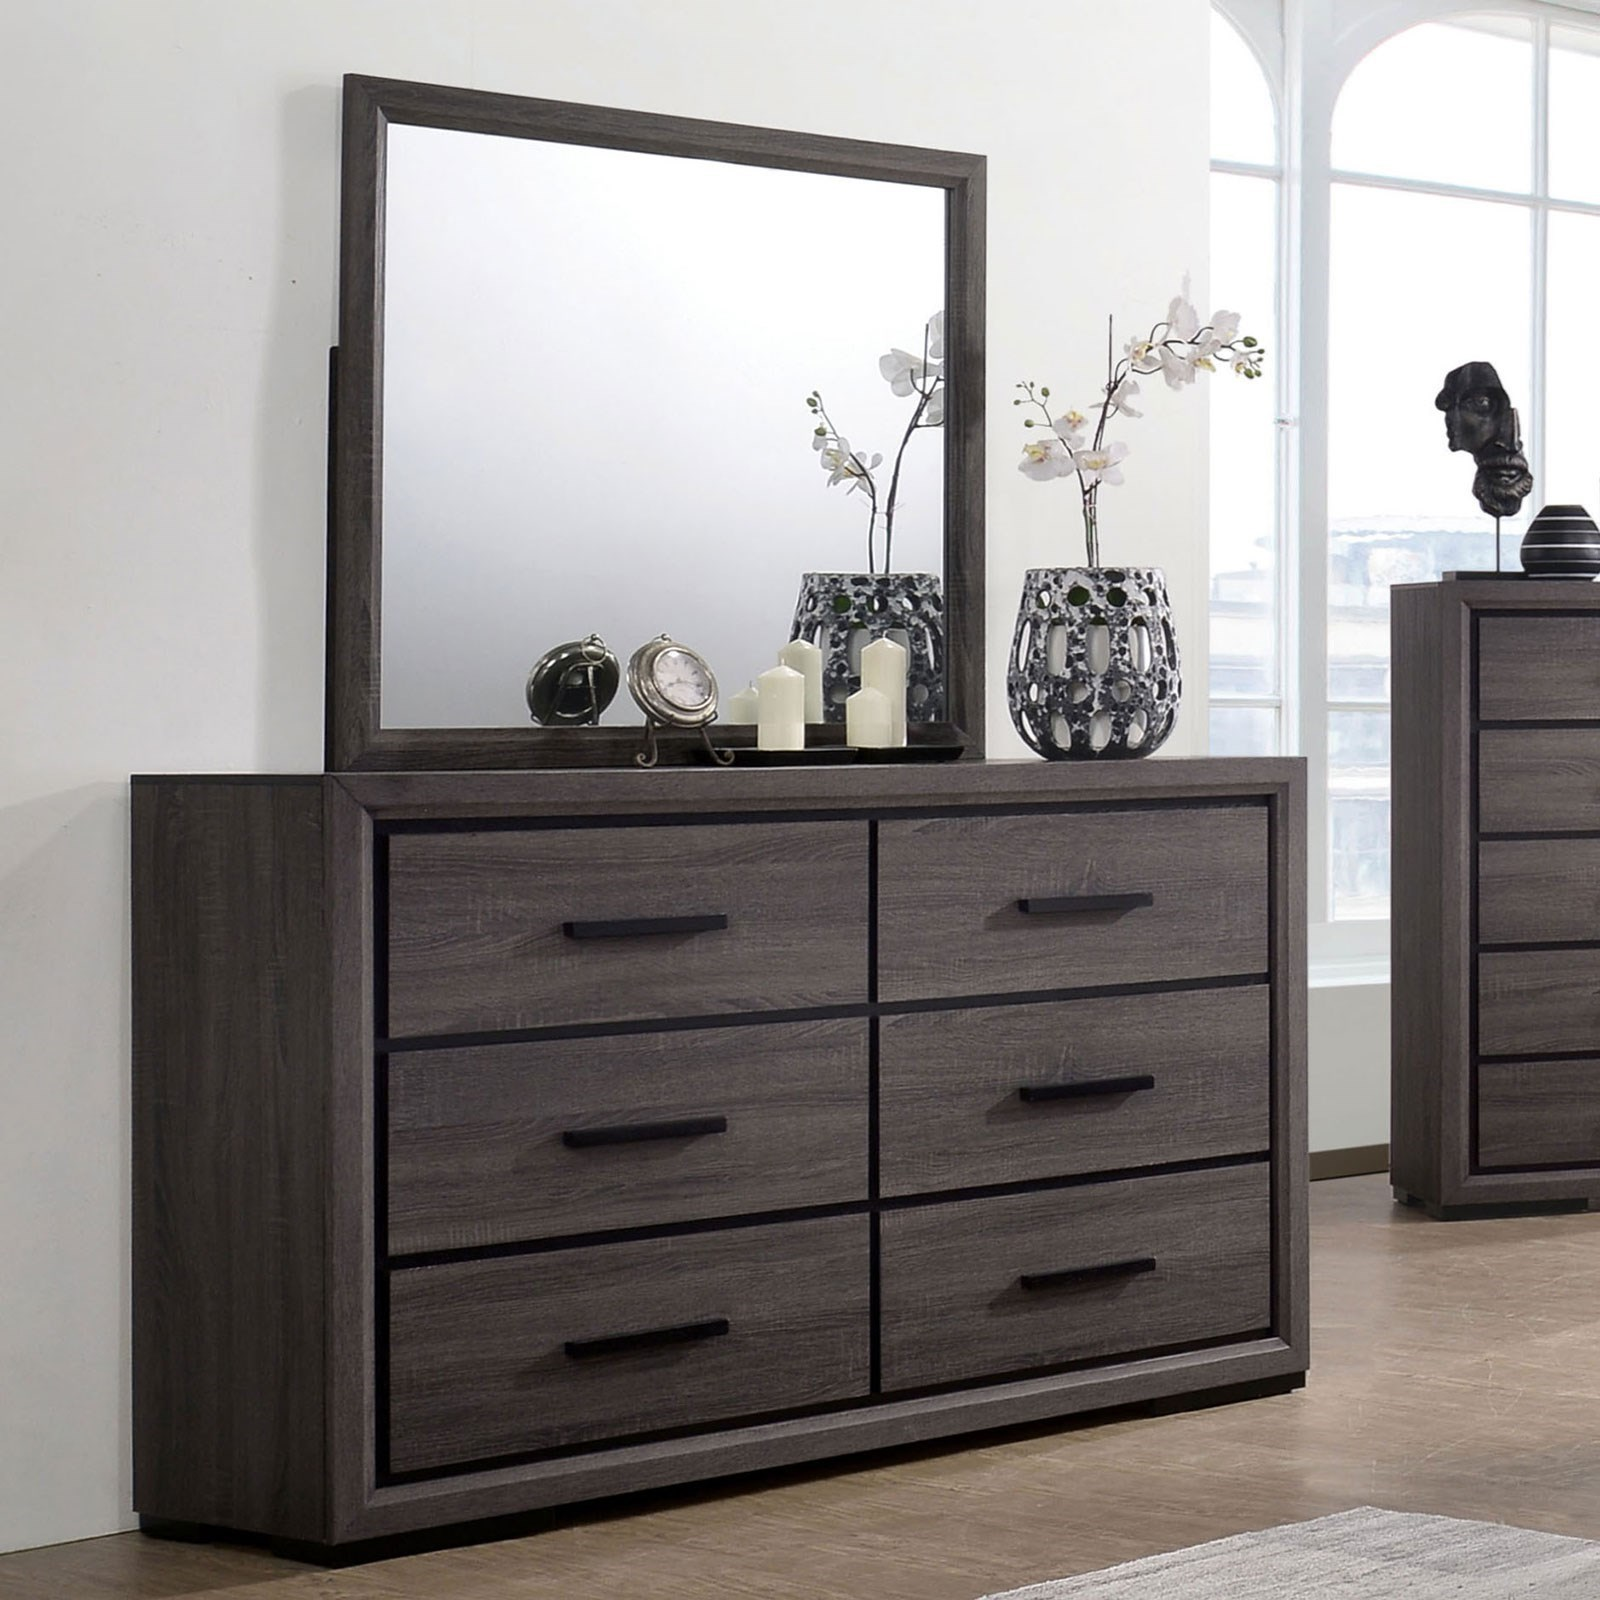 Conwy Dresser and Mirror Combination at Household Furniture